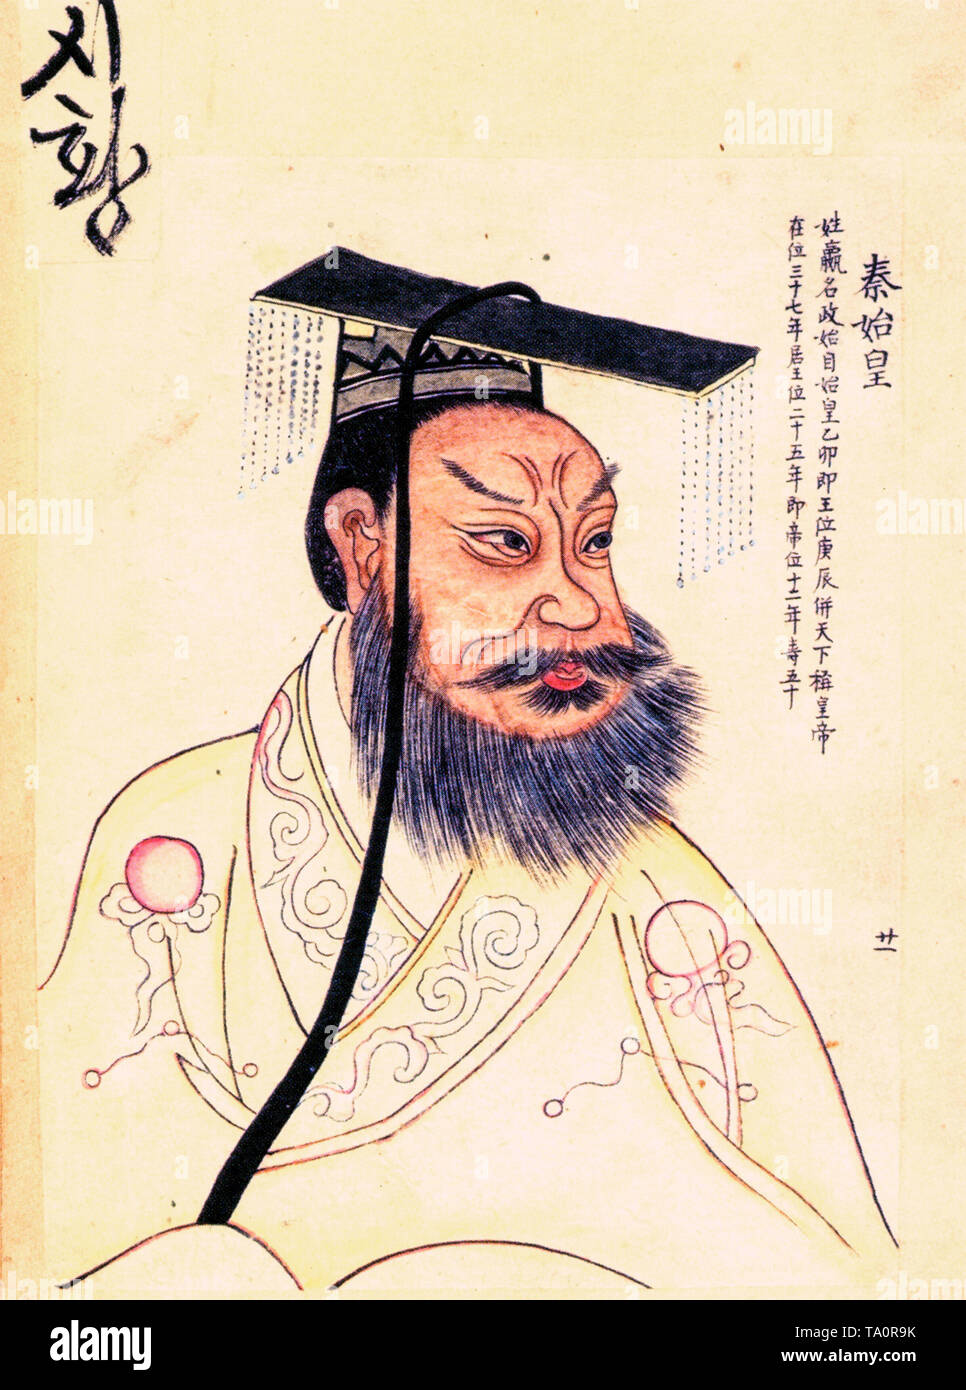 Qin Shi Huang, portrait painting, 19th Century - Stock Image